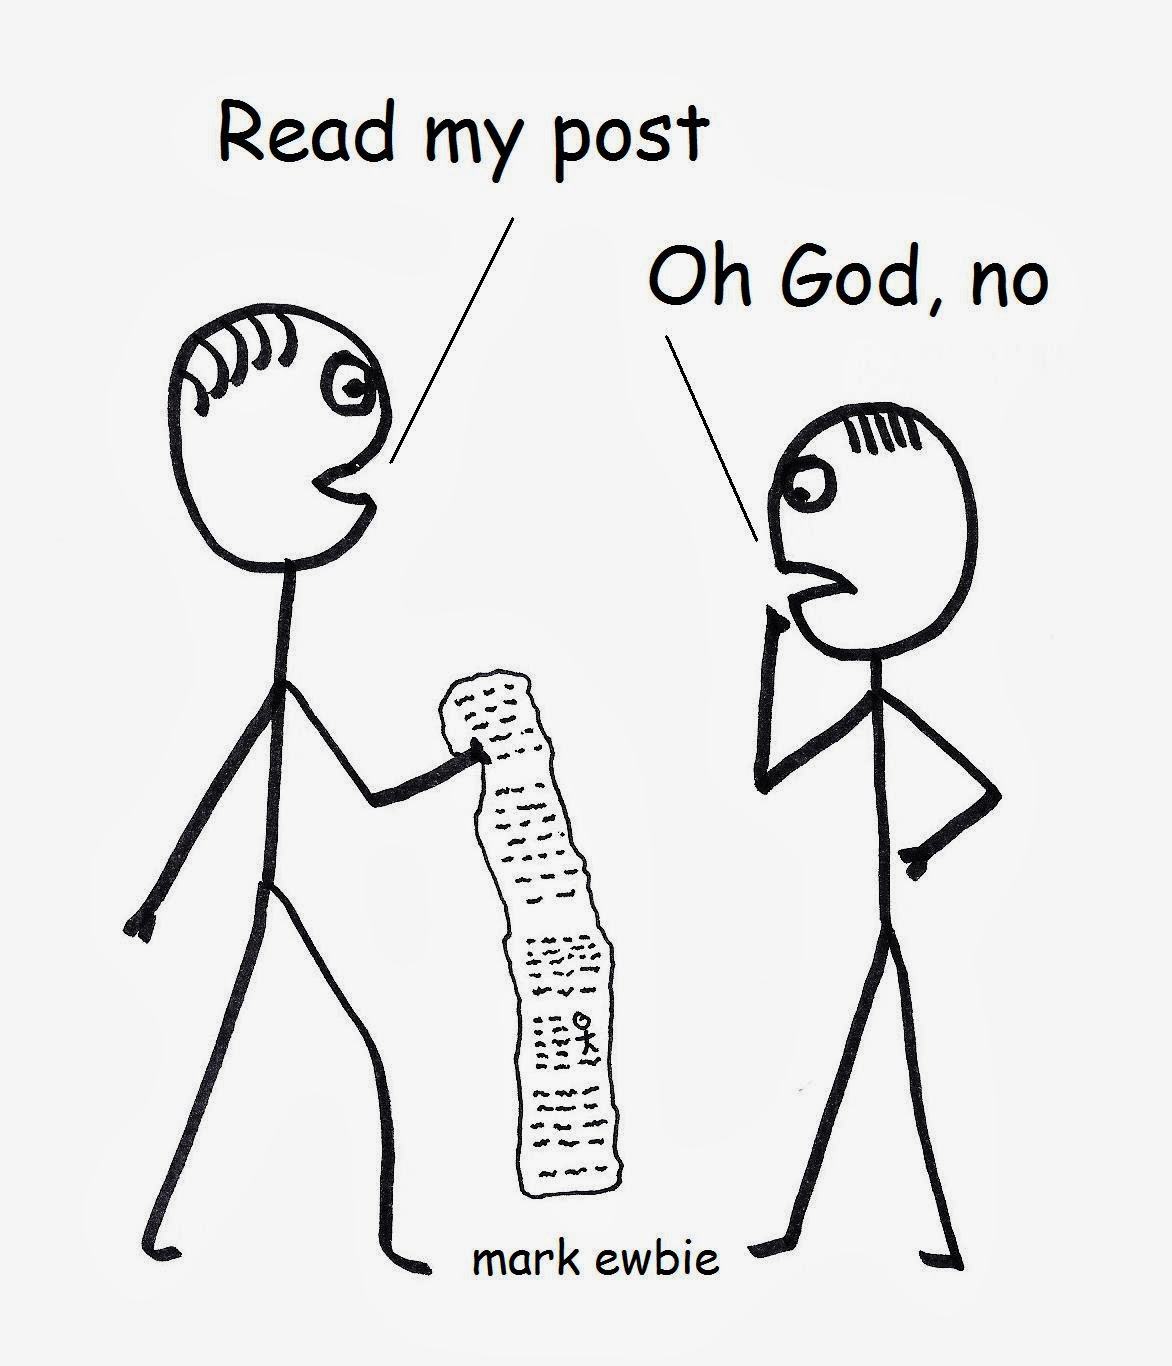 stickman shows his 500 word post to a friend